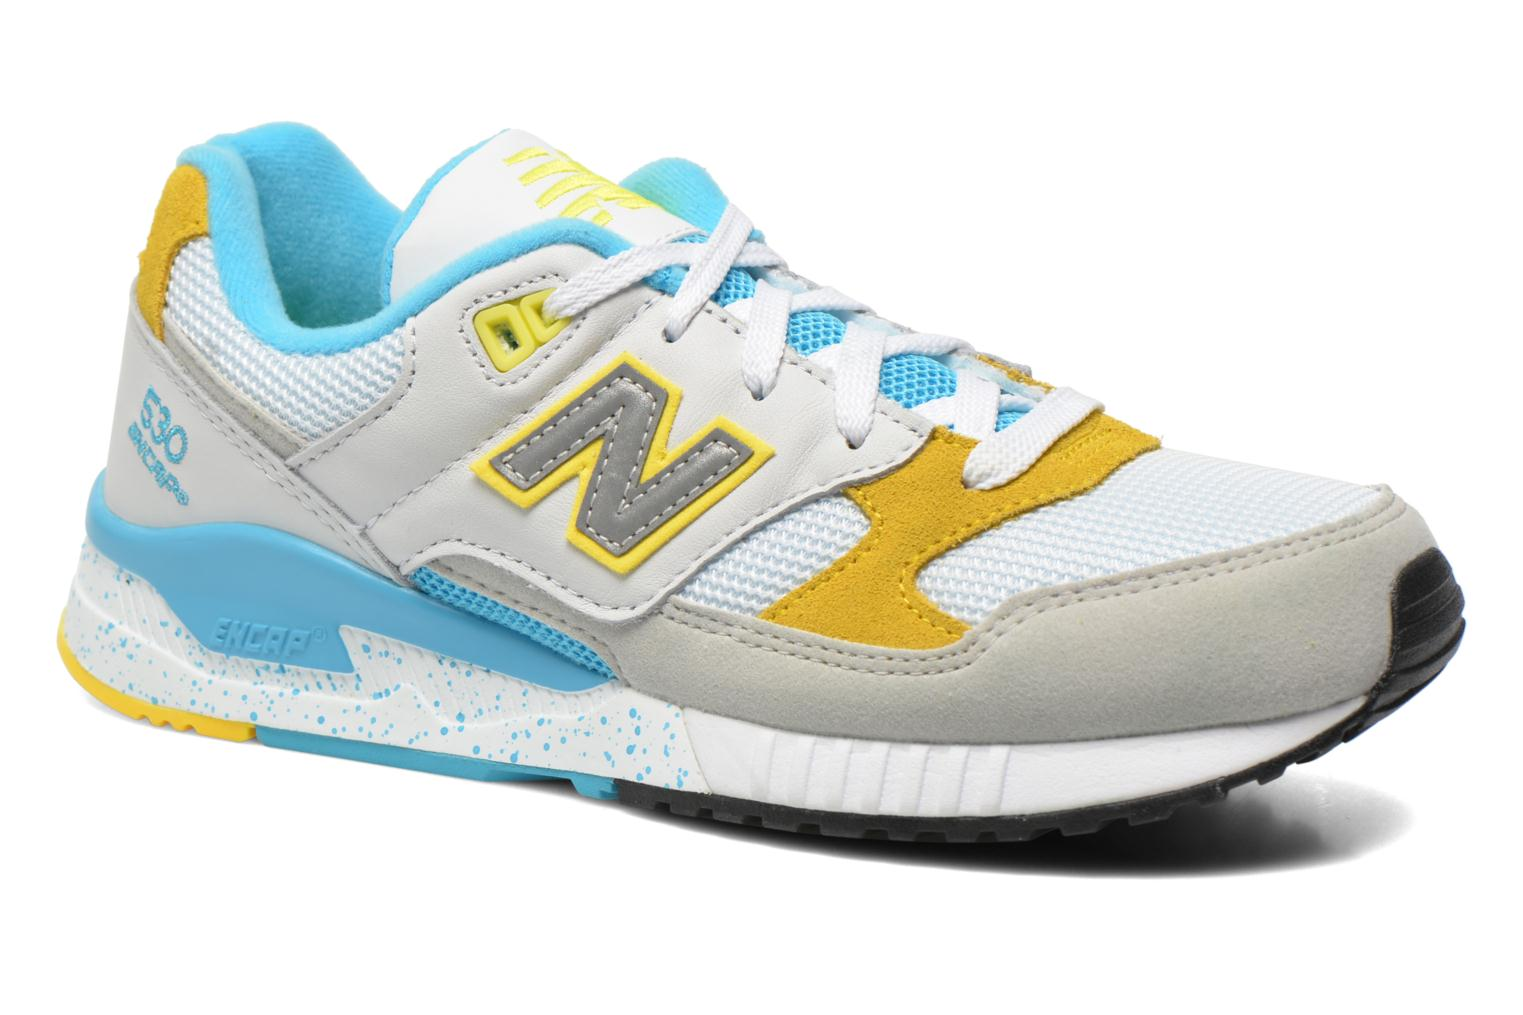 Marques Chaussure femme New Balance femme W530 PSB White/Yellow